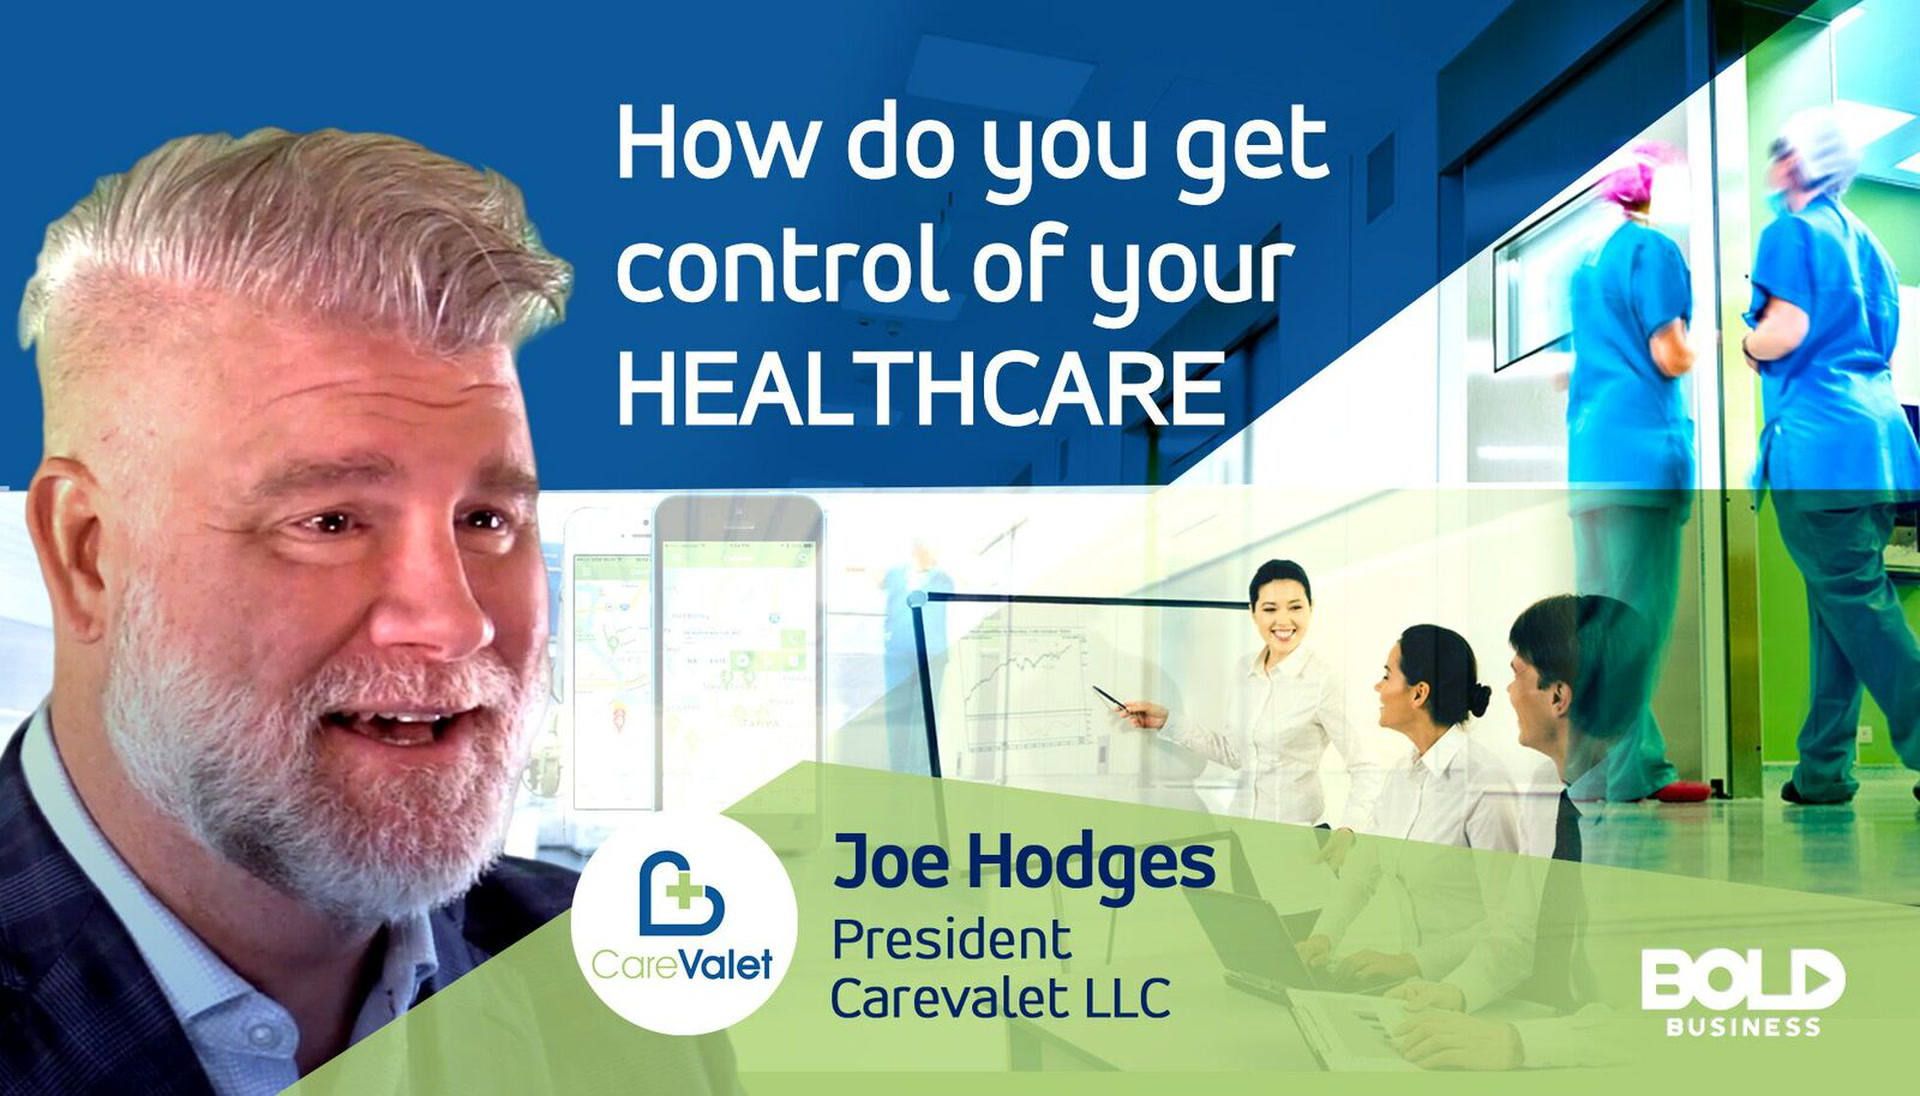 CareValet control of your Health Care